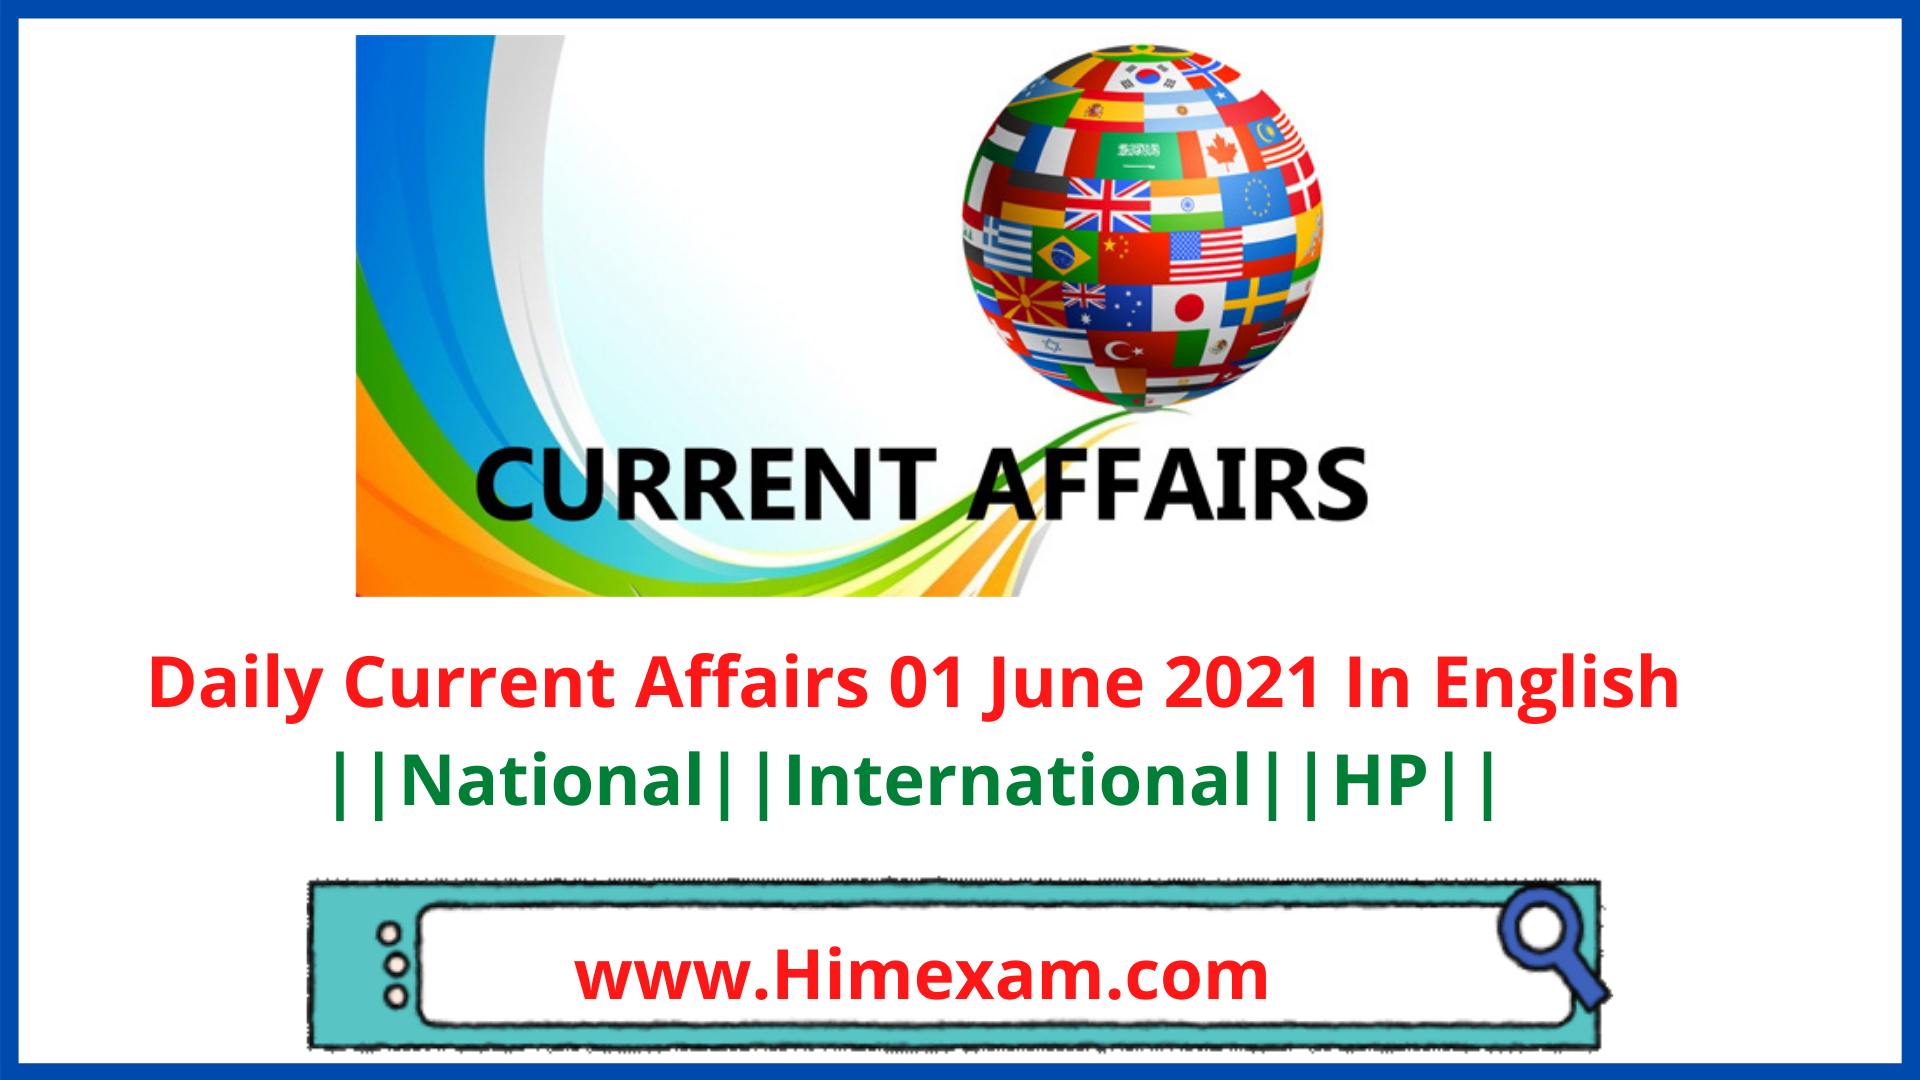 Daily Current Affairs 01 June 2021 In English